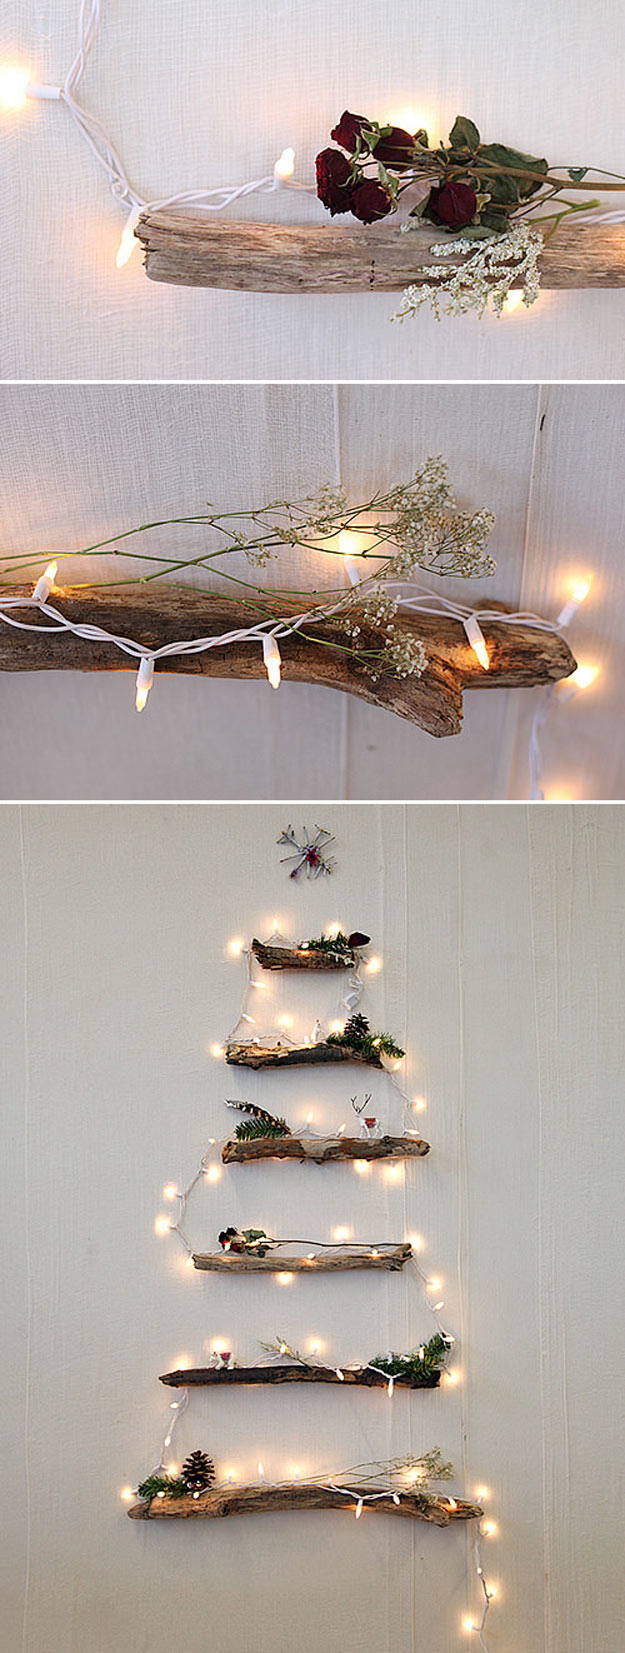 24---Decorating-Your-Small-Space